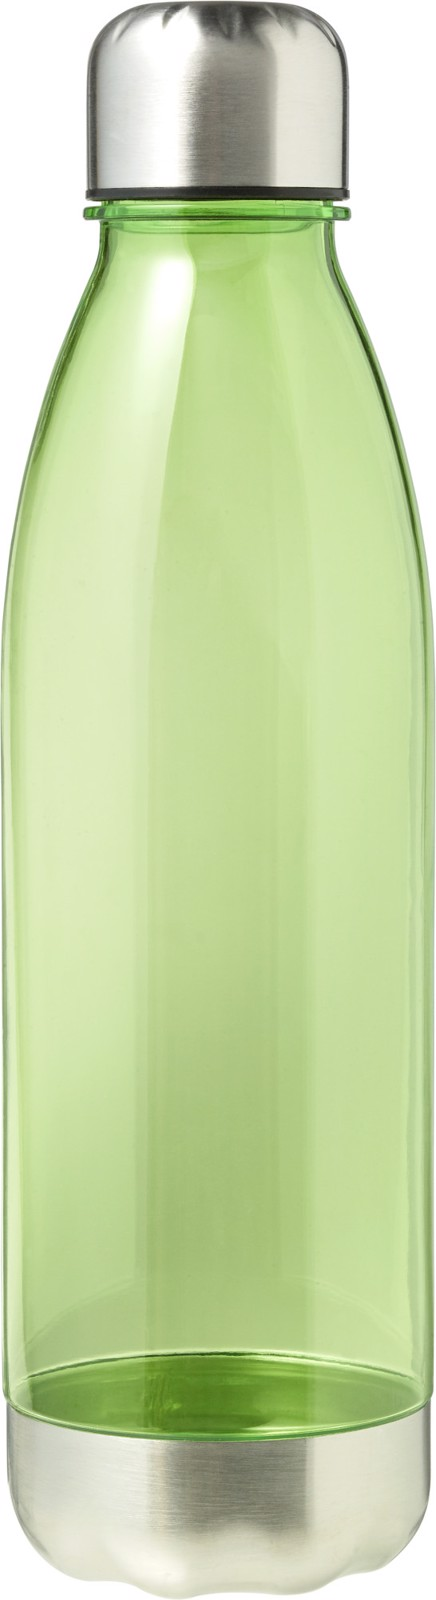 AS bottle - Lime